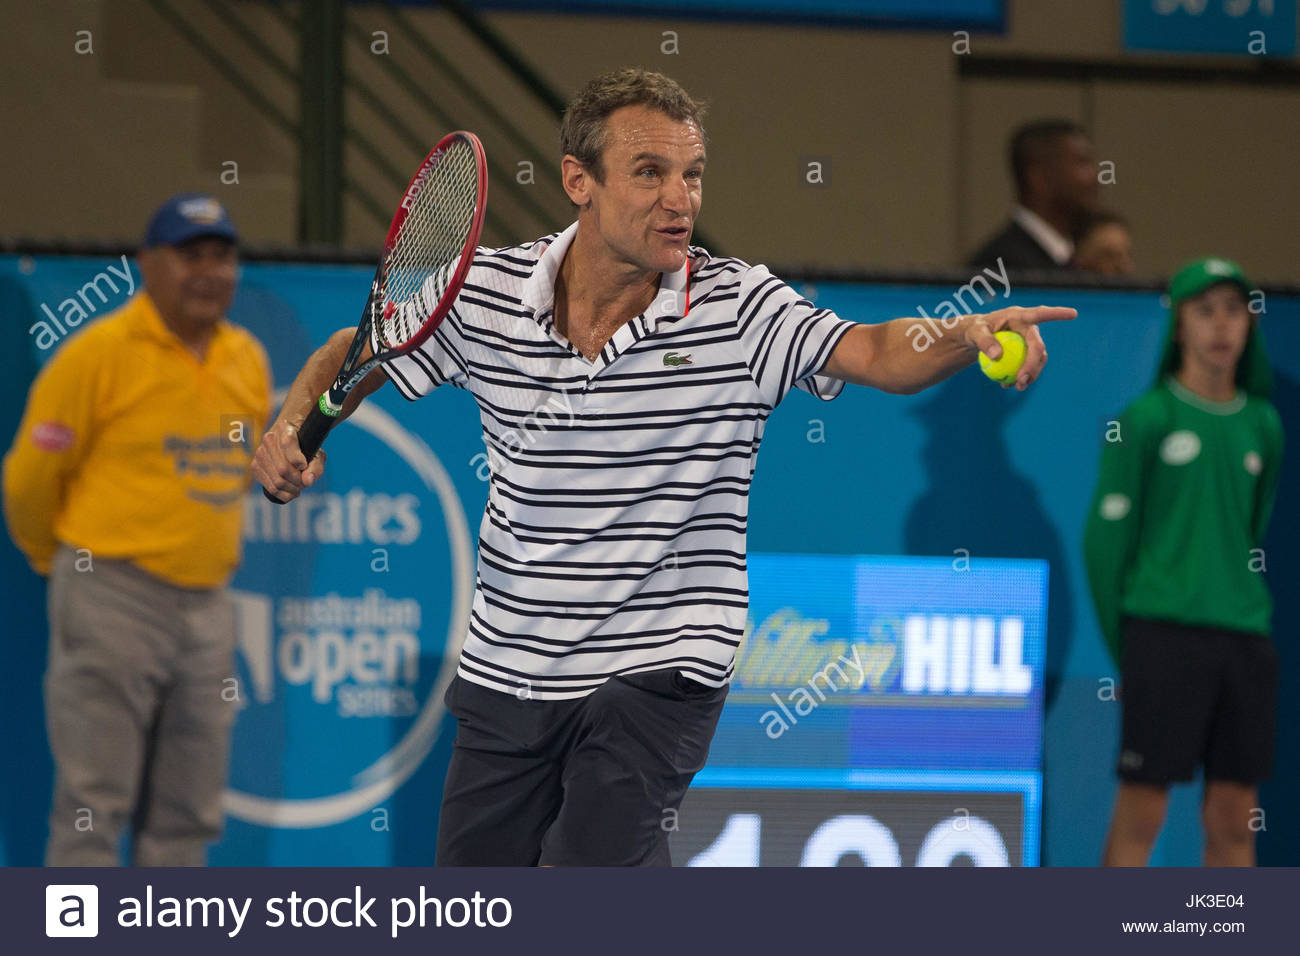 Mats Wilander Mark Philippoussis took to the centre court after a